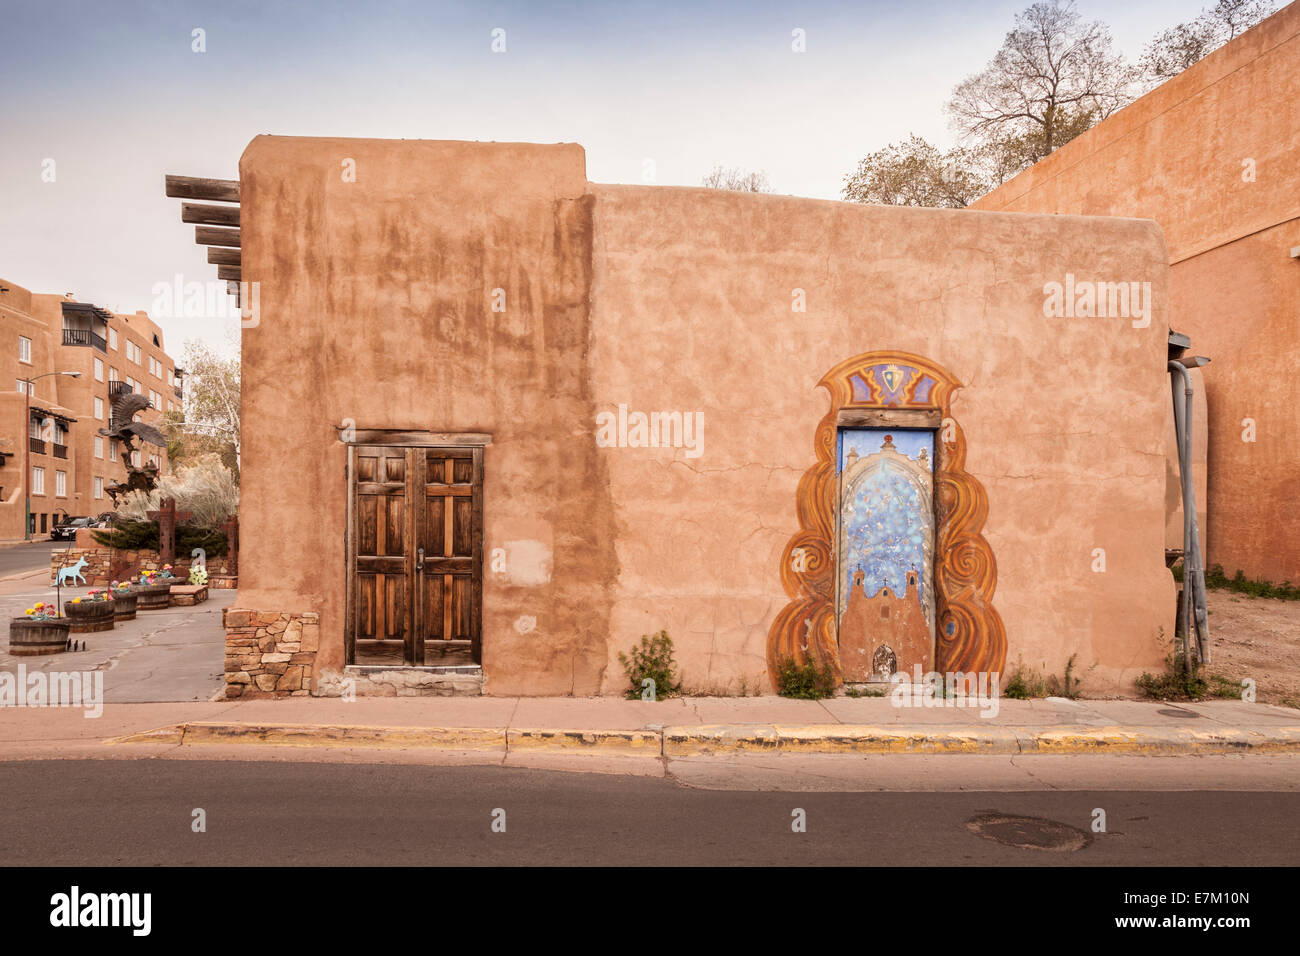 A traditional adobe house in Santa Fe, New Mexico. - Stock Image